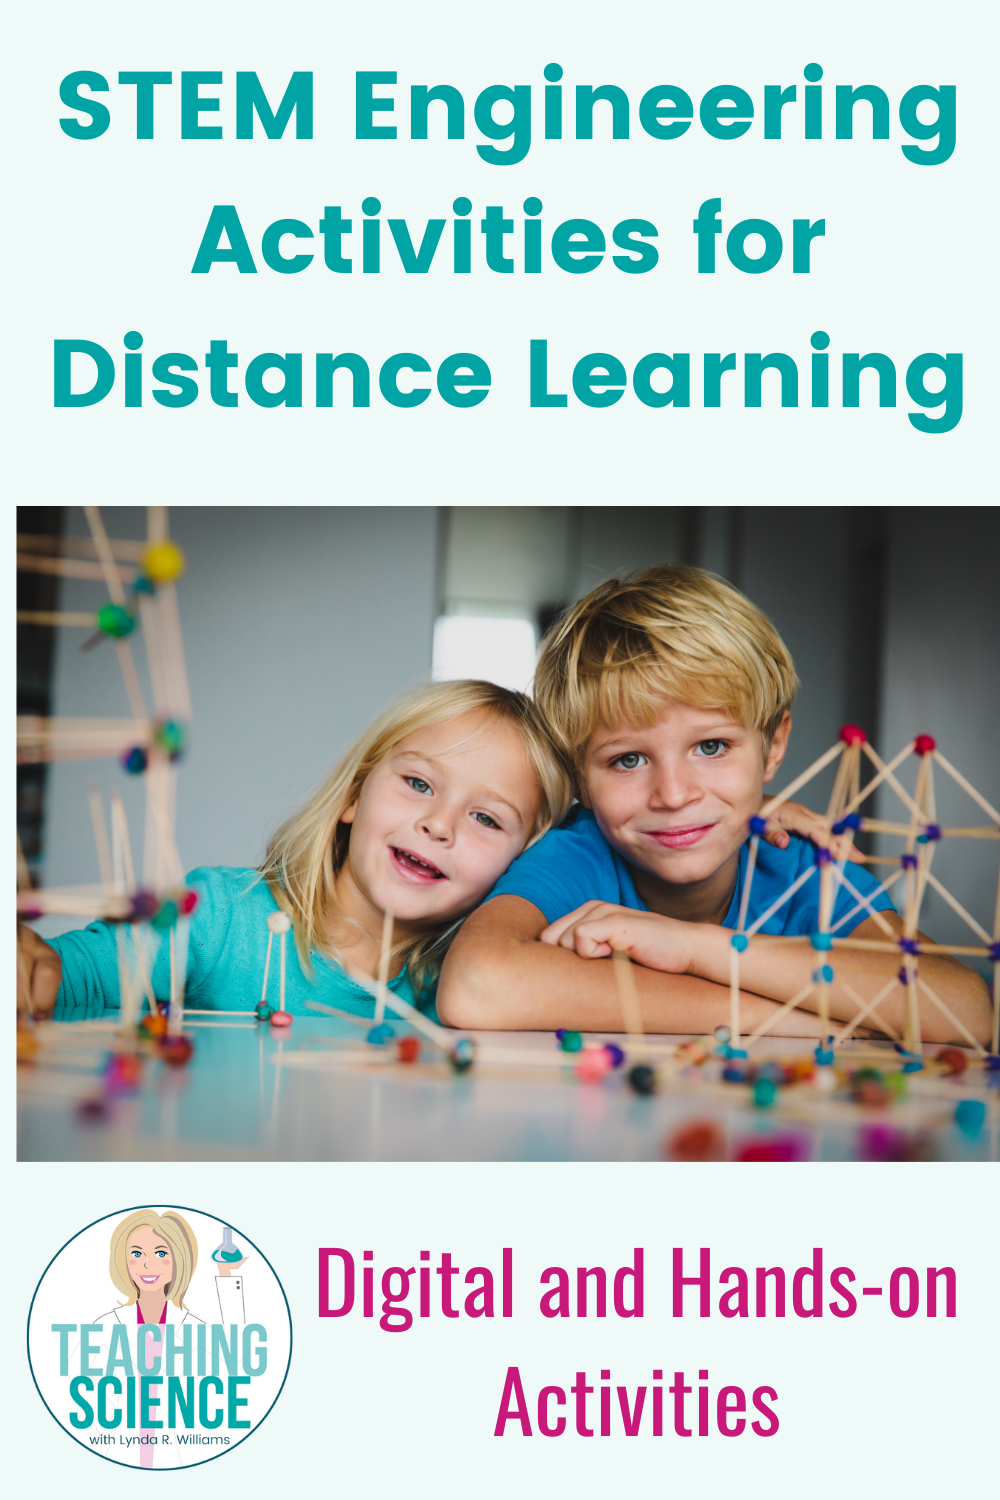 STEM Engineering Projects for Distance Learning